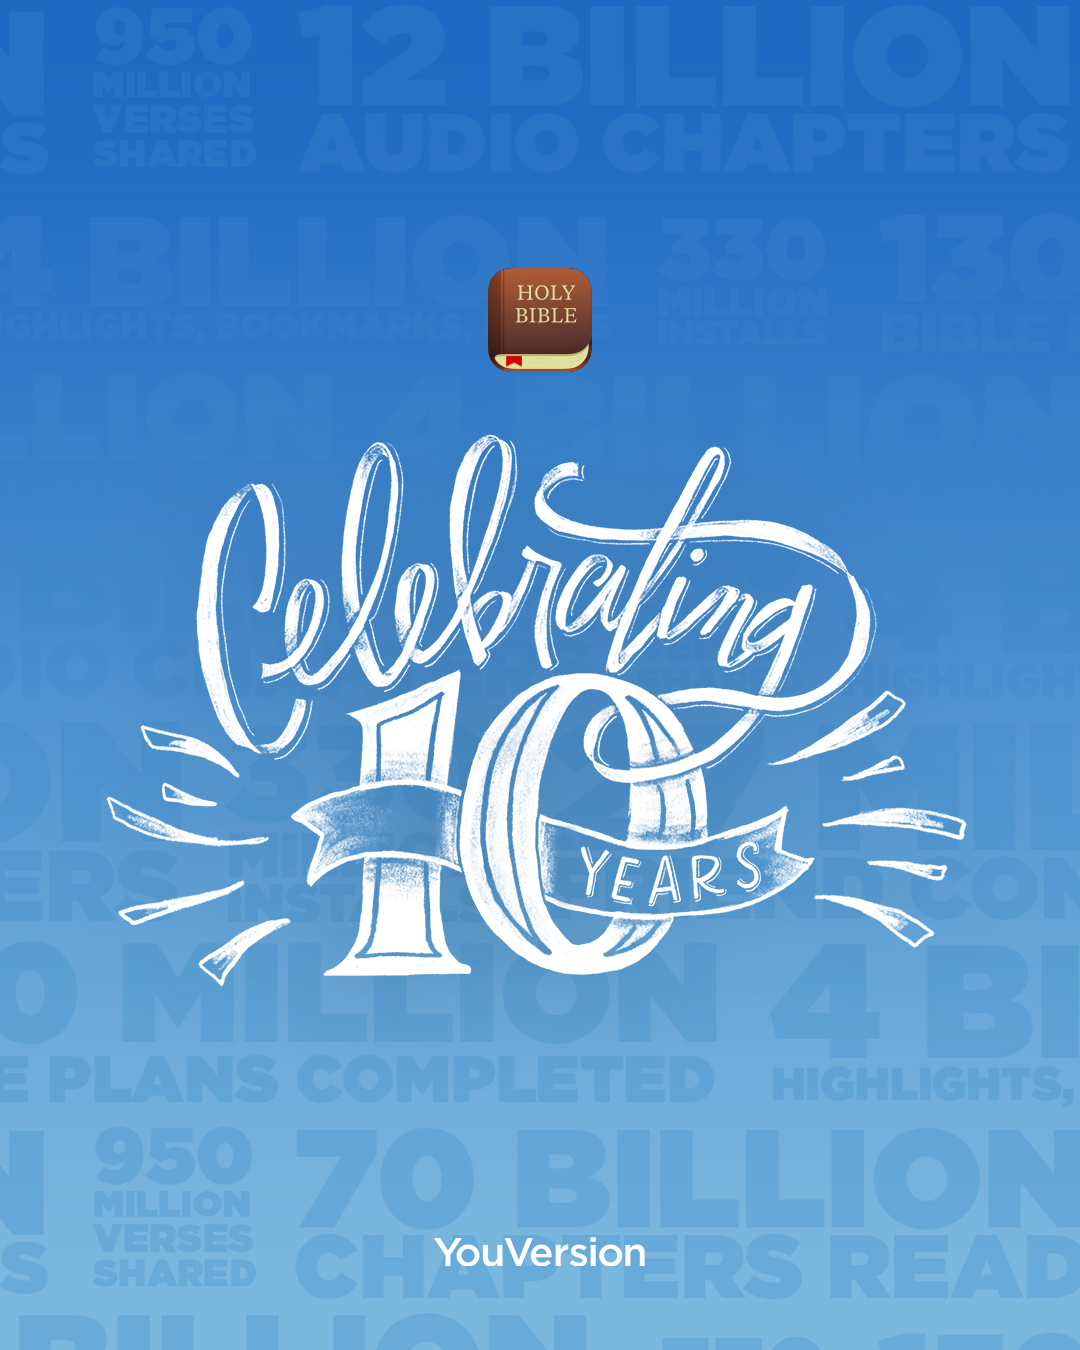 🎉 The Bible App turns 10 today! - YouVersion